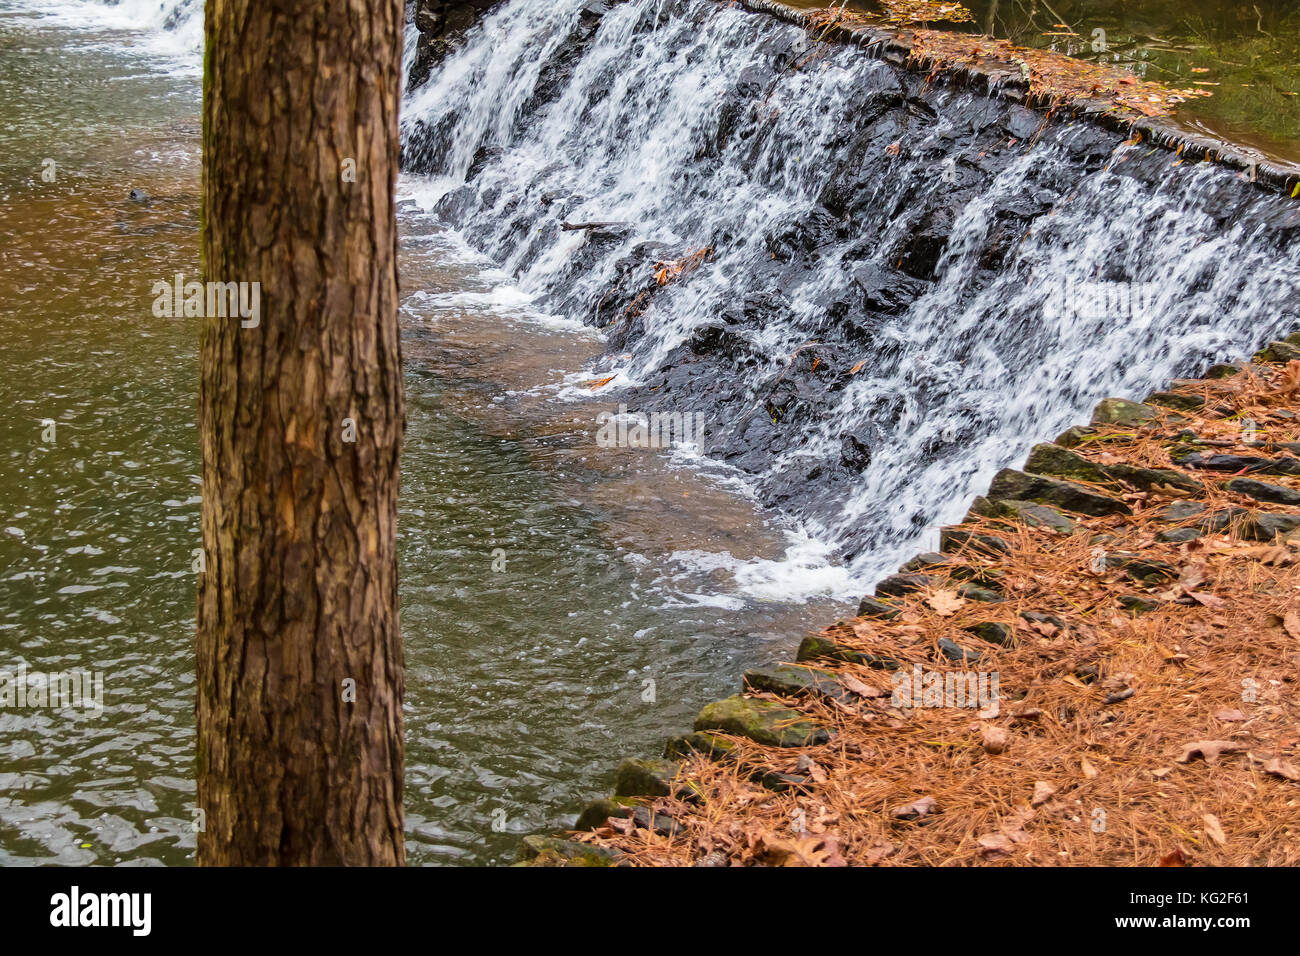 Spillway waterfall and the tree in the Lullwater Park, Atlanta, USA Stock Photo